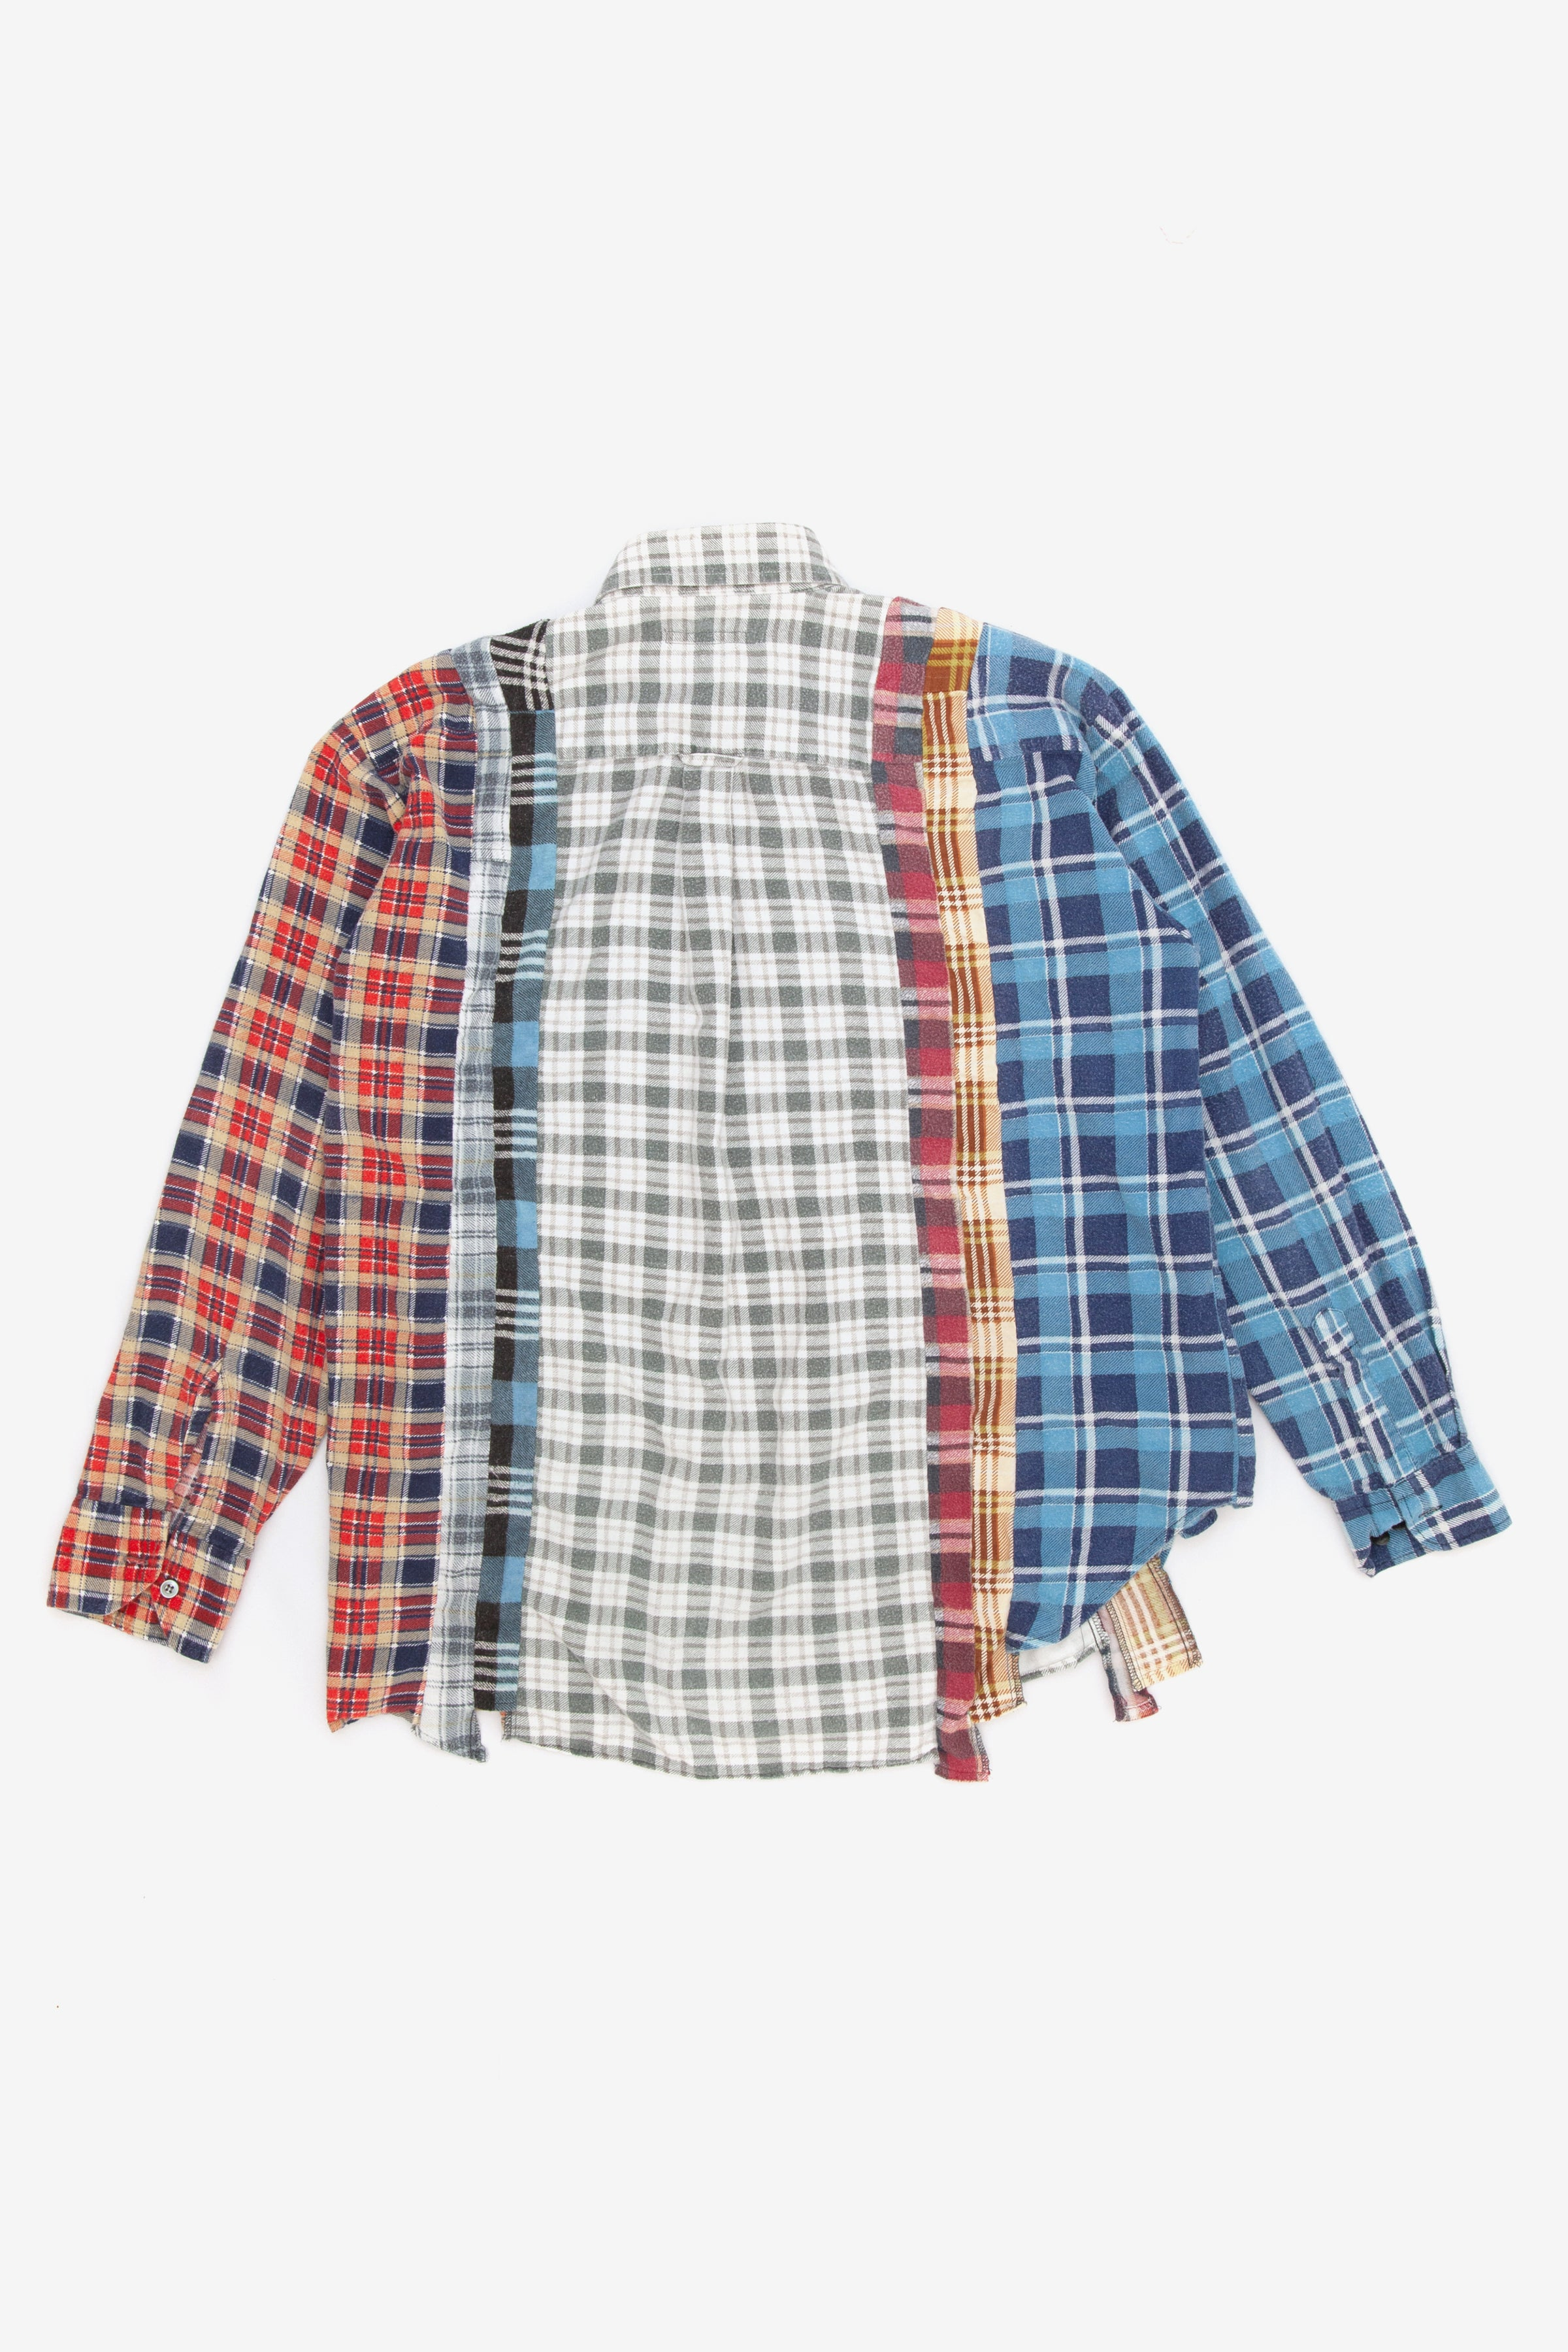 Needles rebuild 7 cuts flannel shirt - Large 1